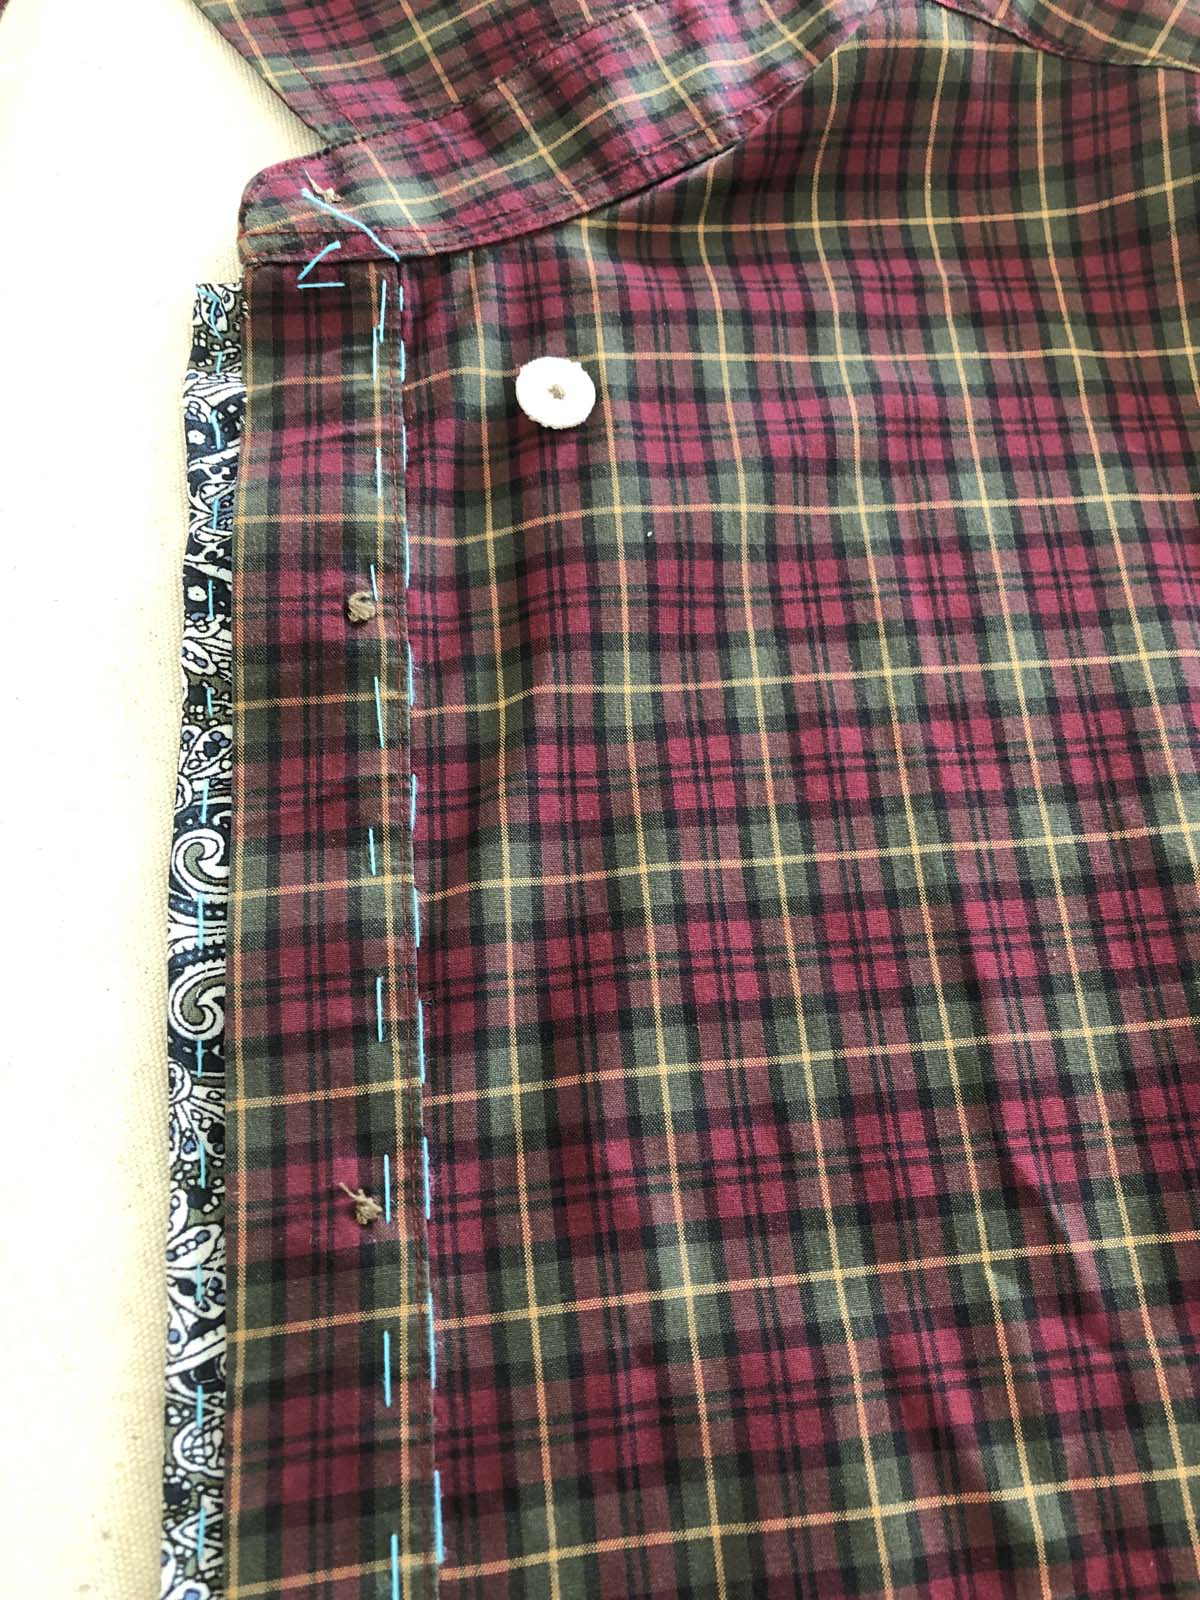 Underside view of the front placket